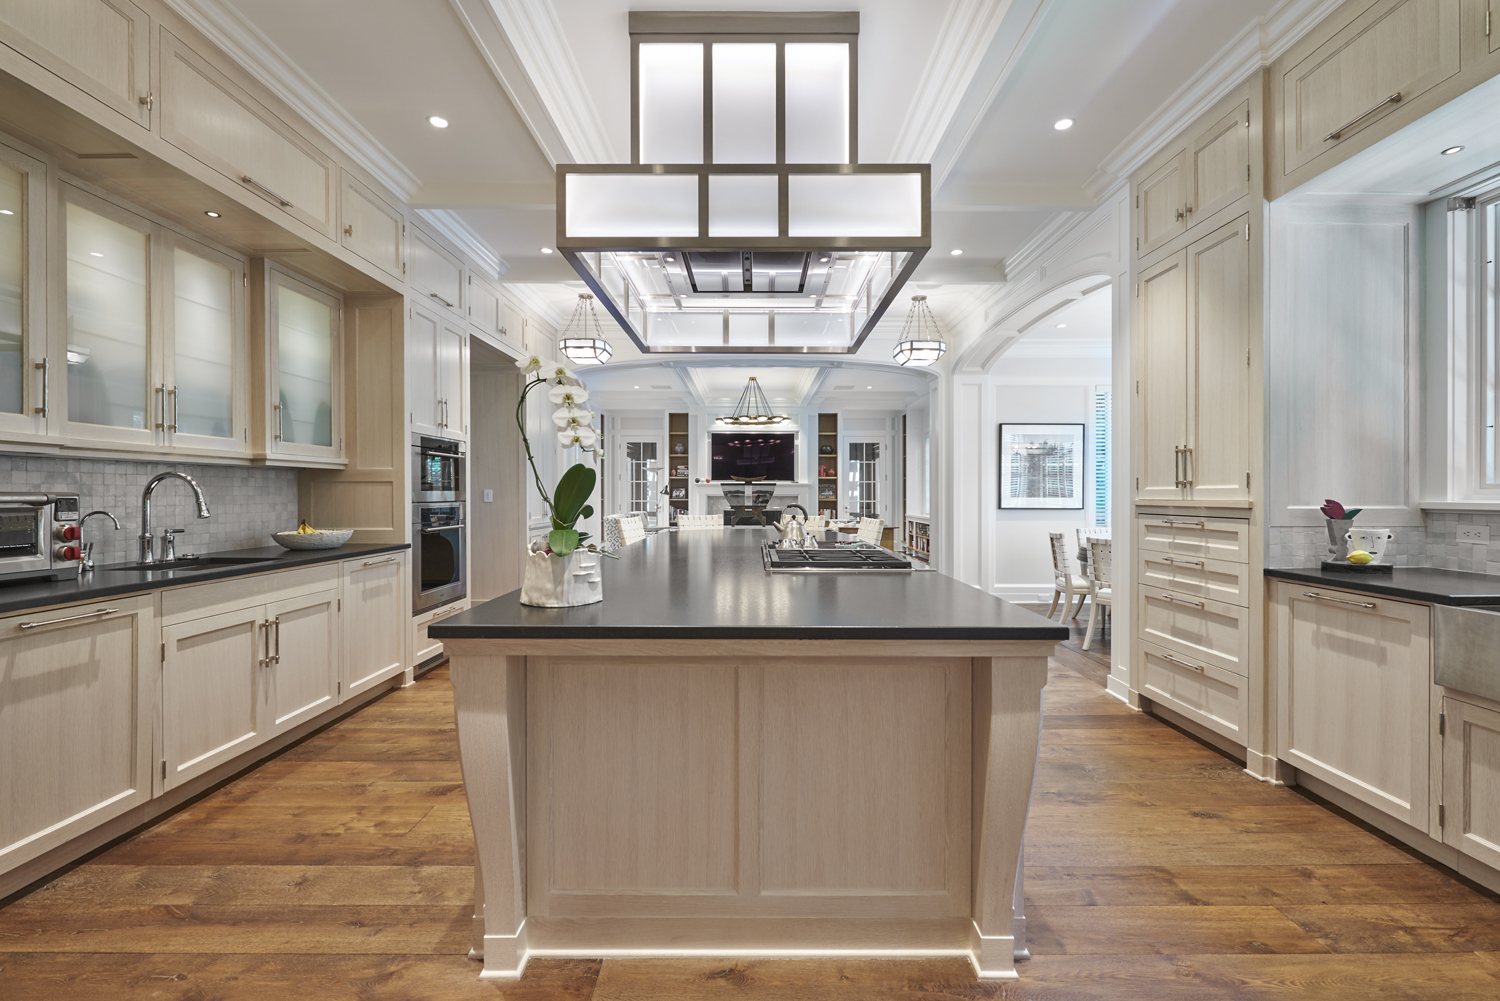 Kitchen-island-westport-ct-interior-w.jpg